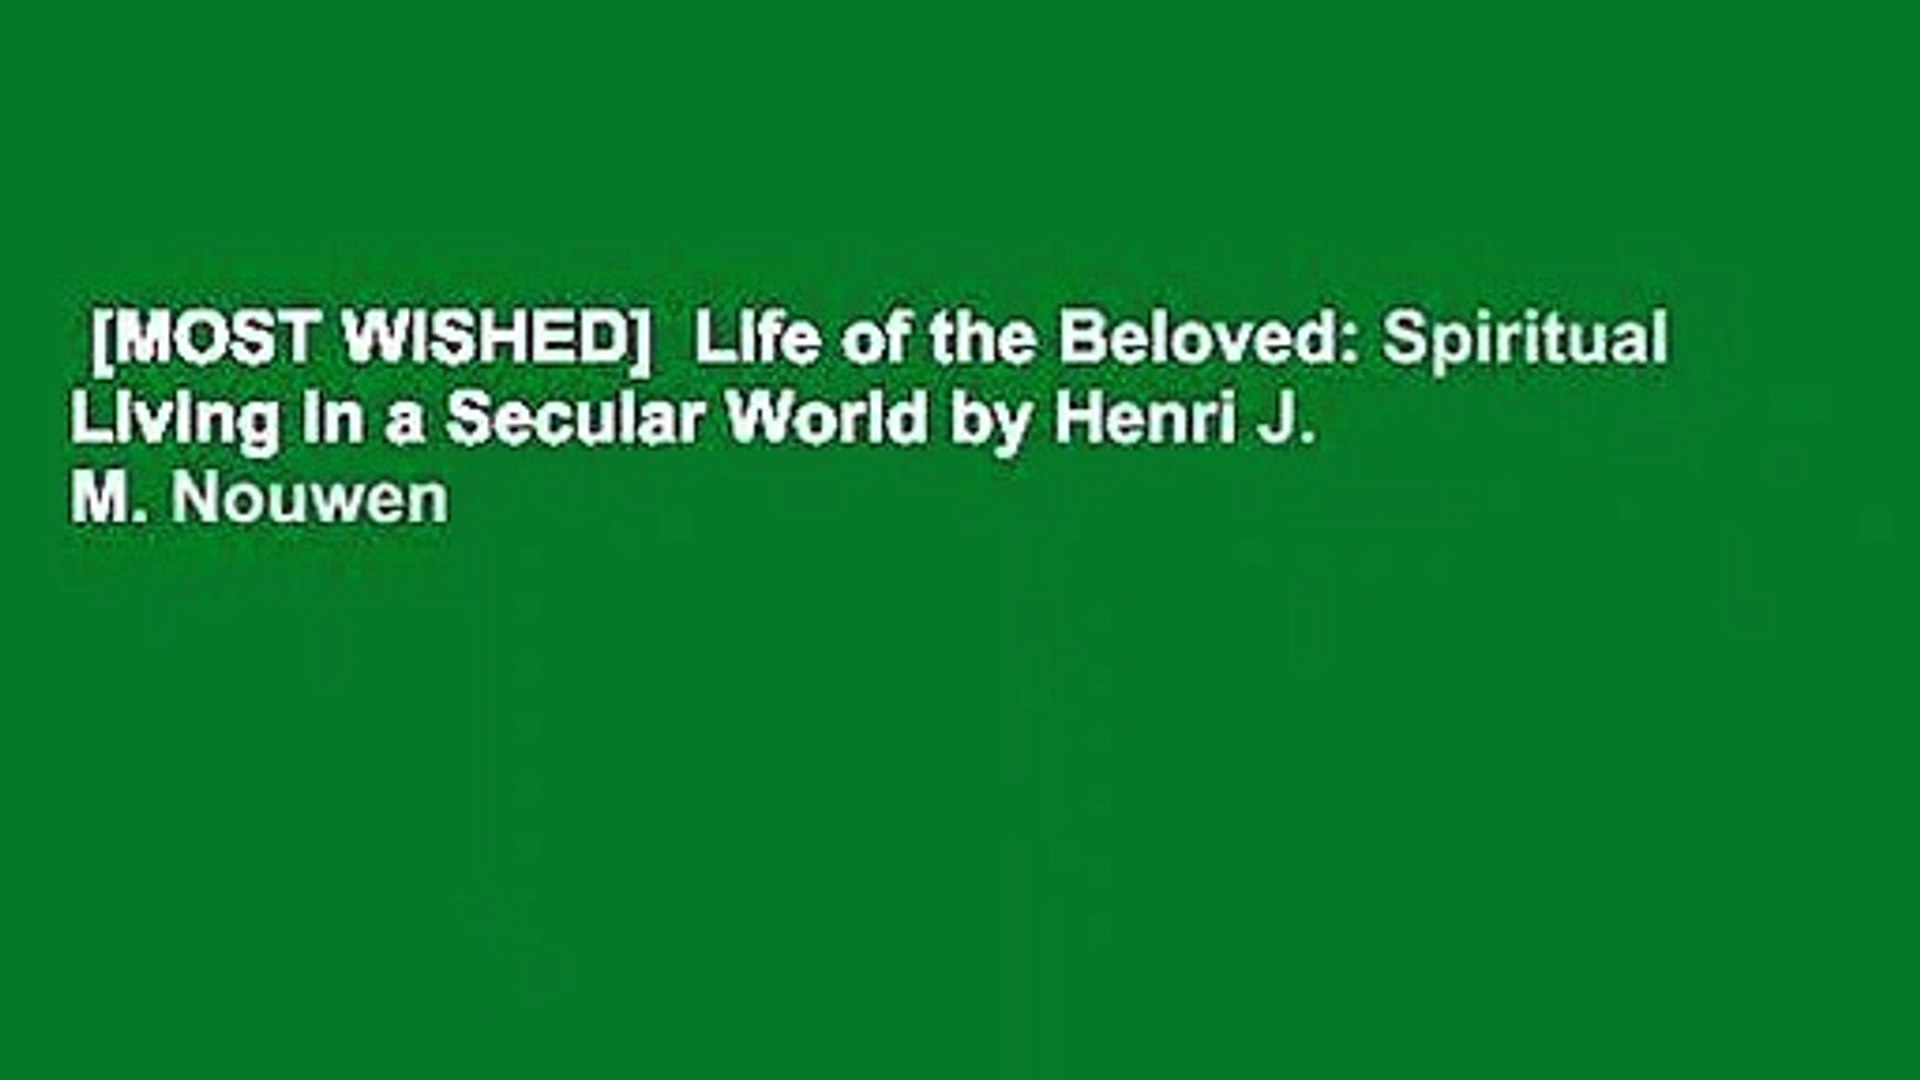 [MOST WISHED]  Life of the Beloved: Spiritual Living in a Secular World by Henri J. M. Nouwen